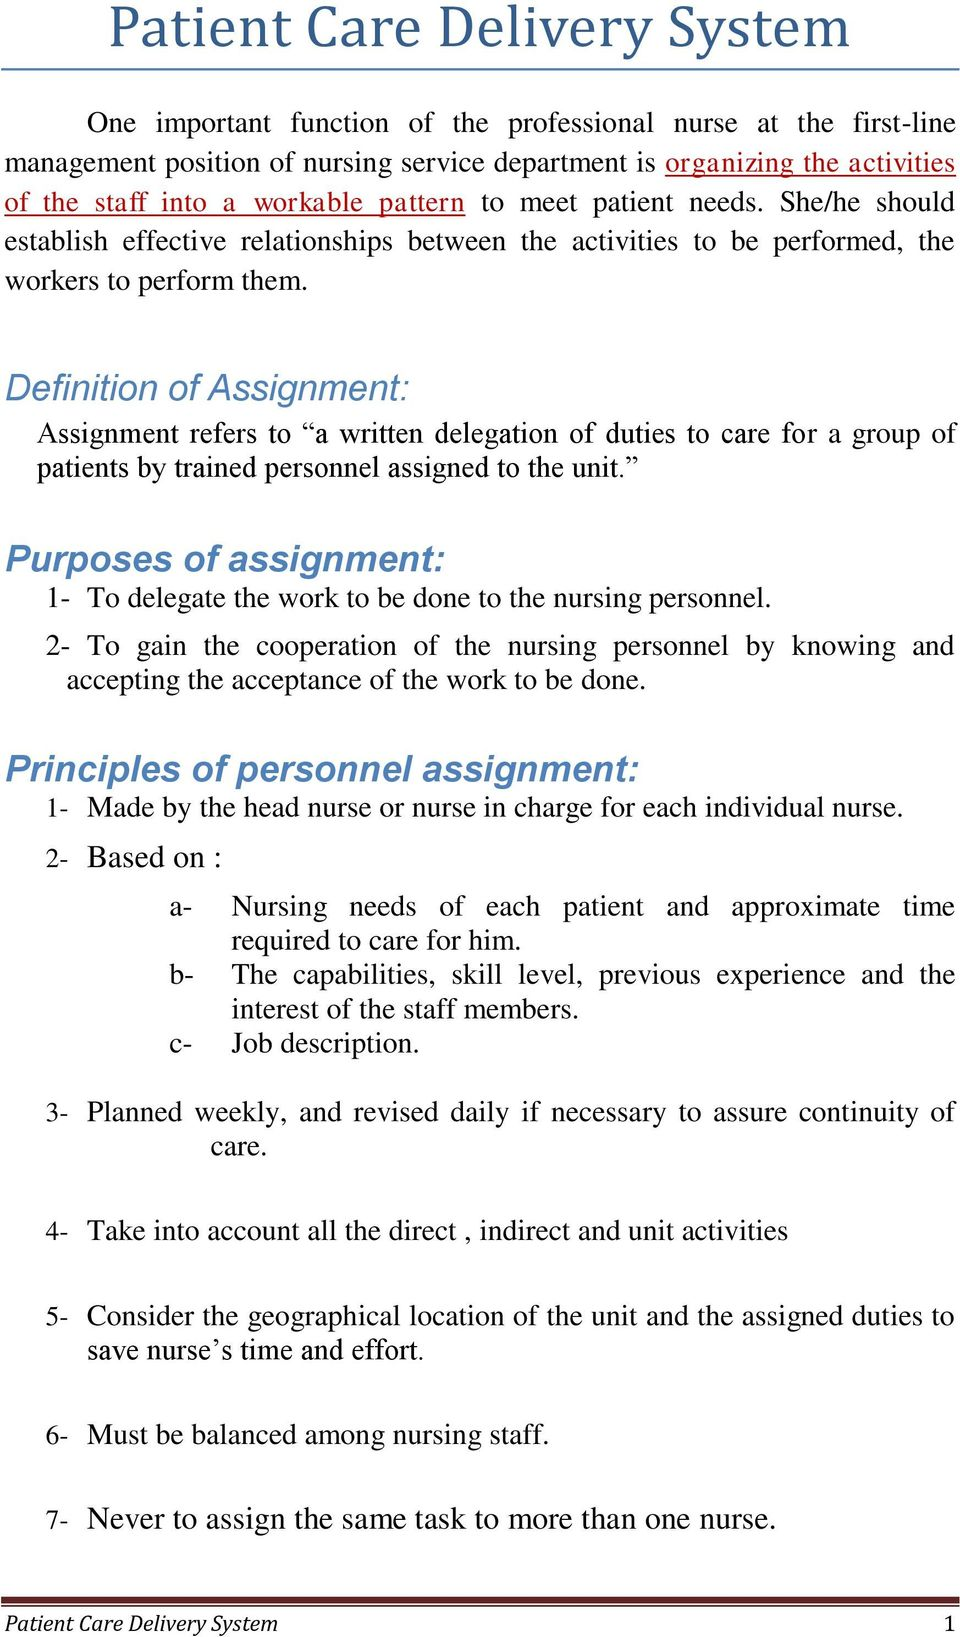 Definition of Assignment: Assignment refers to a written delegation of duties to care for a group of patients by trained personnel assigned to the unit.